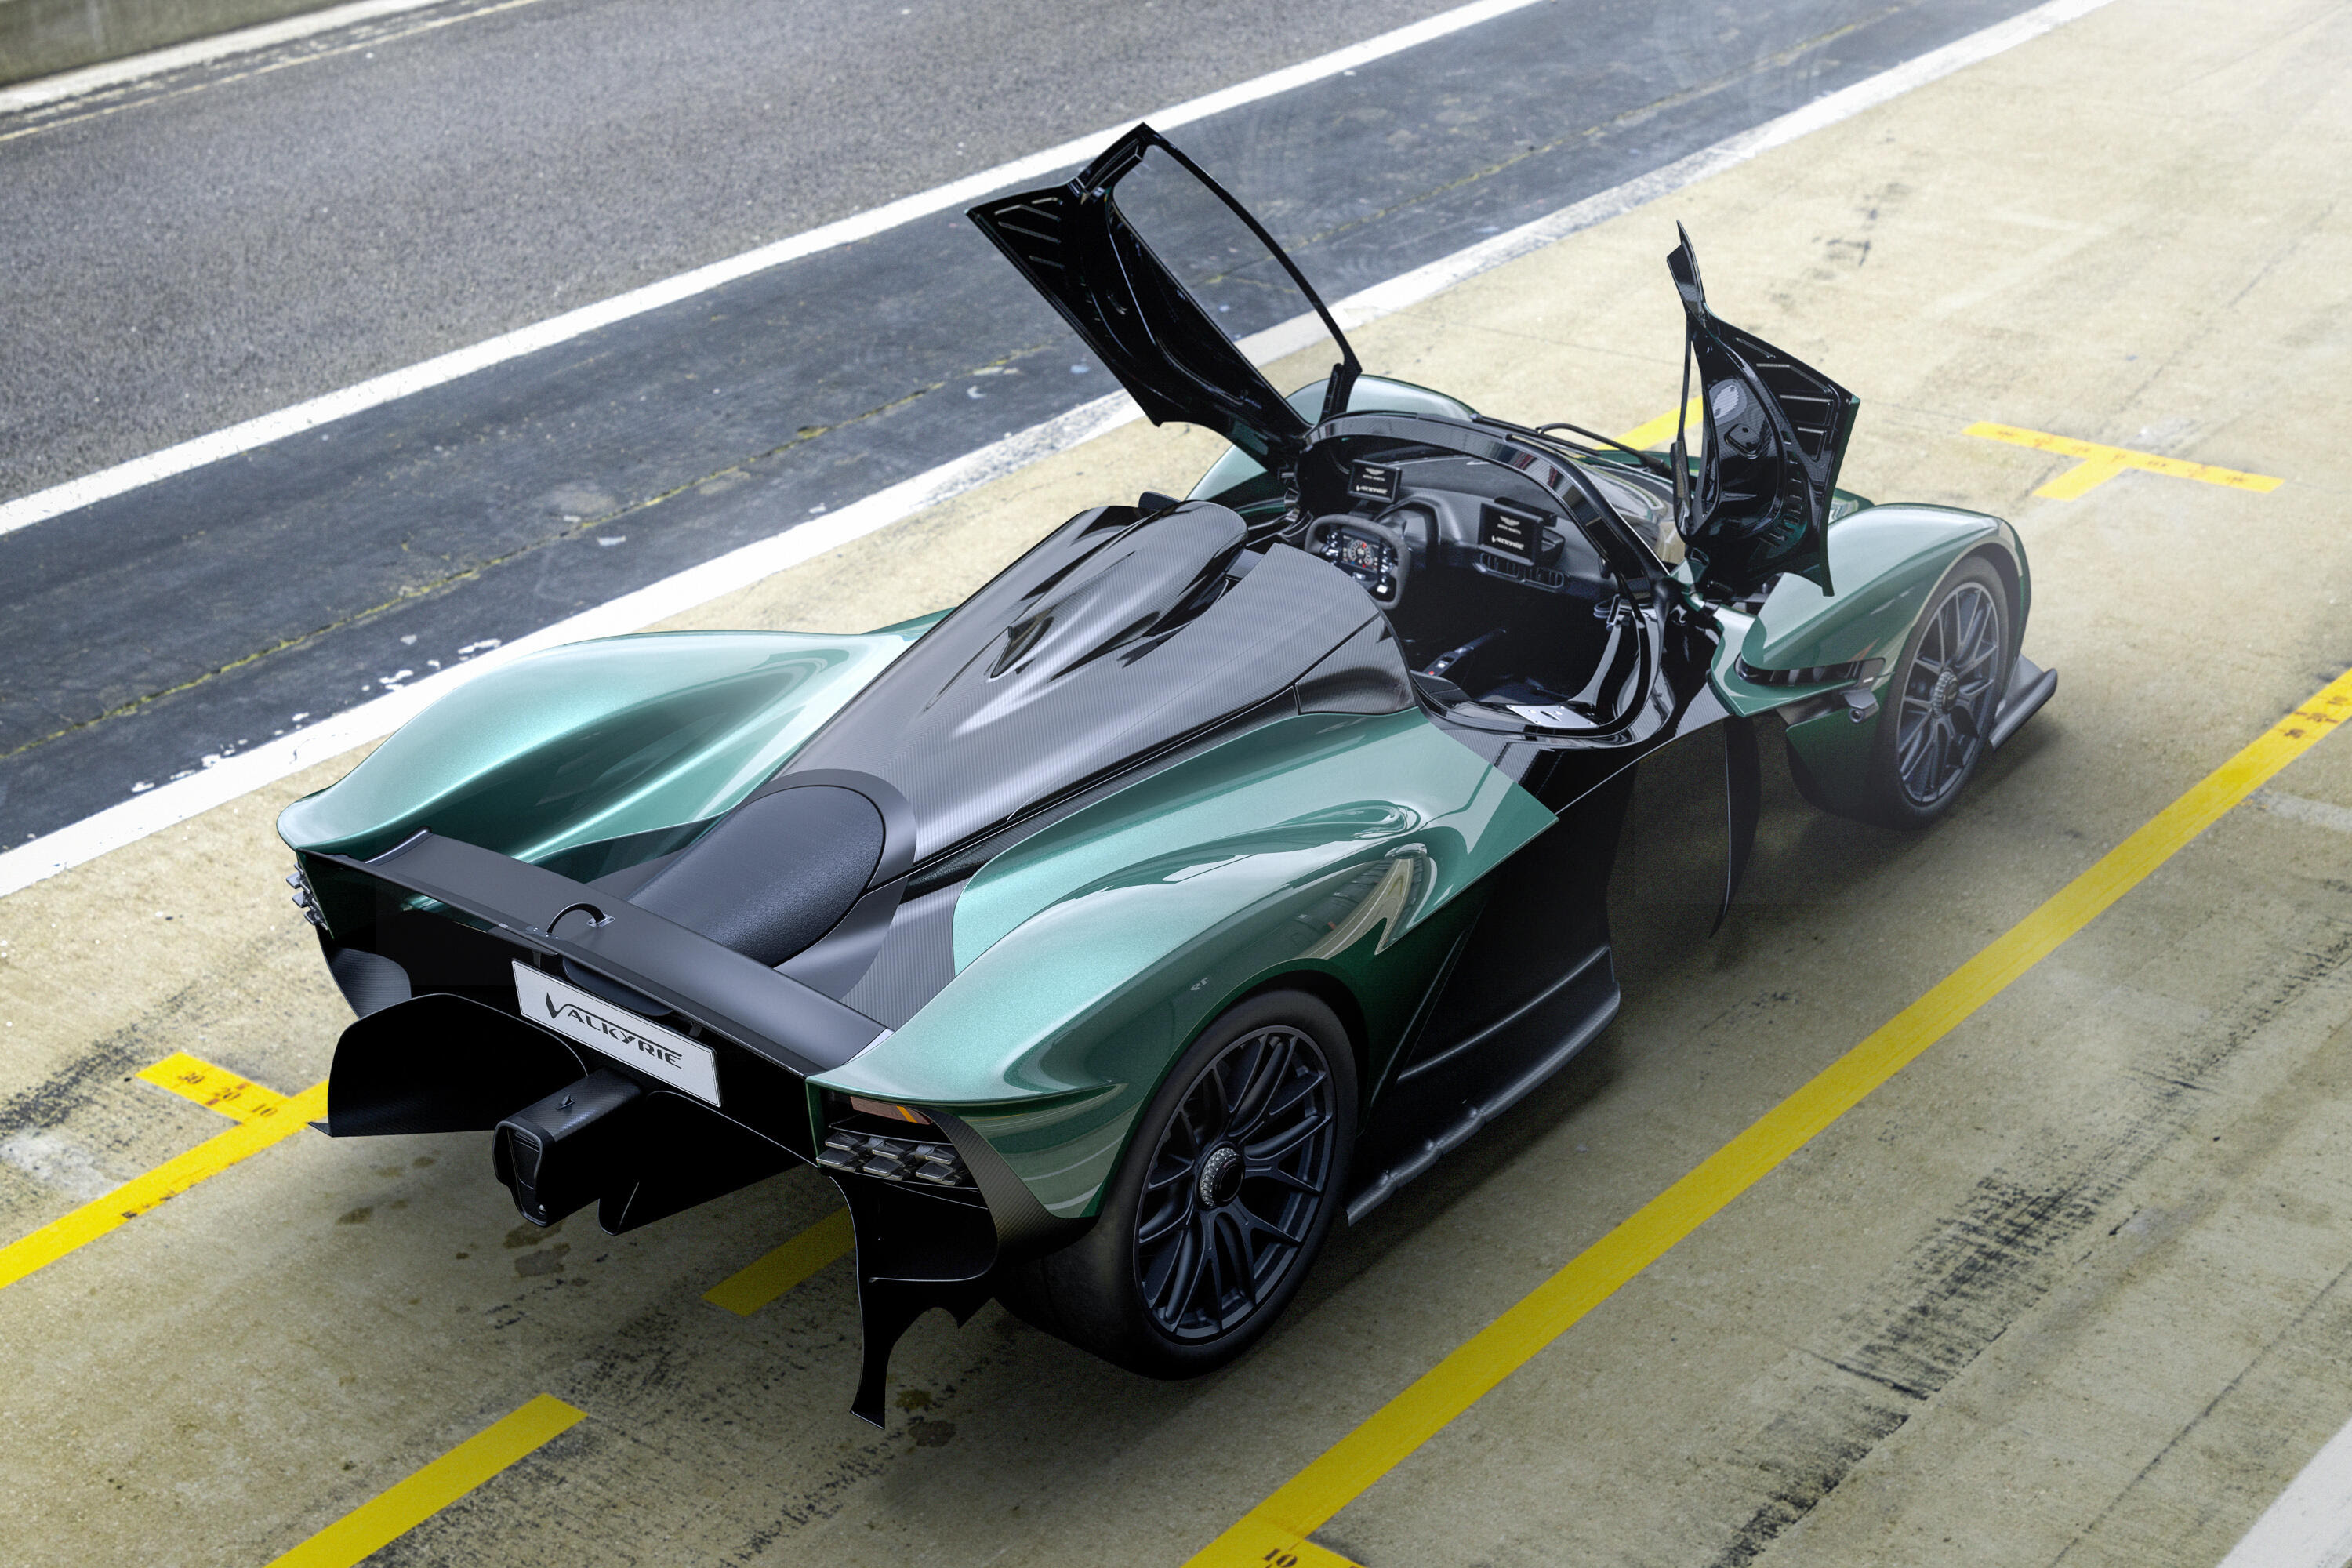 This Aston Martin vehicle is officially the most extreme convertible ever